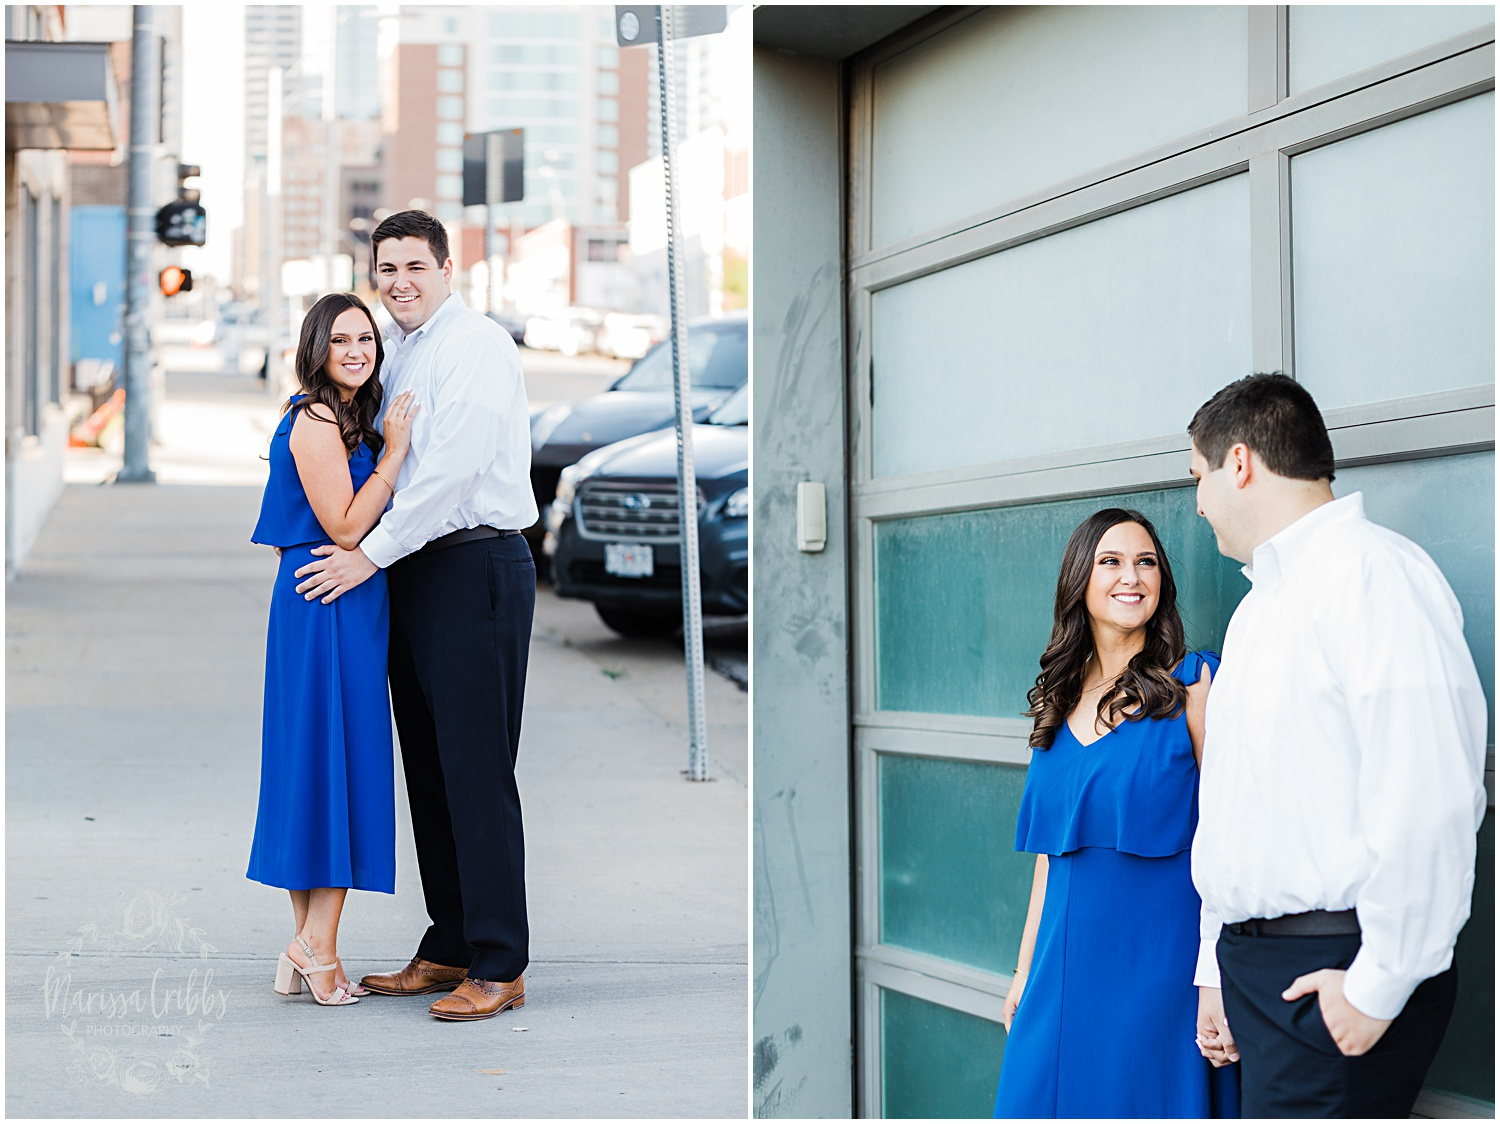 MORGAN & KEVIN ENGAGEMENT BLOG | MARISSA CRIBBS PHOTOGRAPHY_8281.jpg